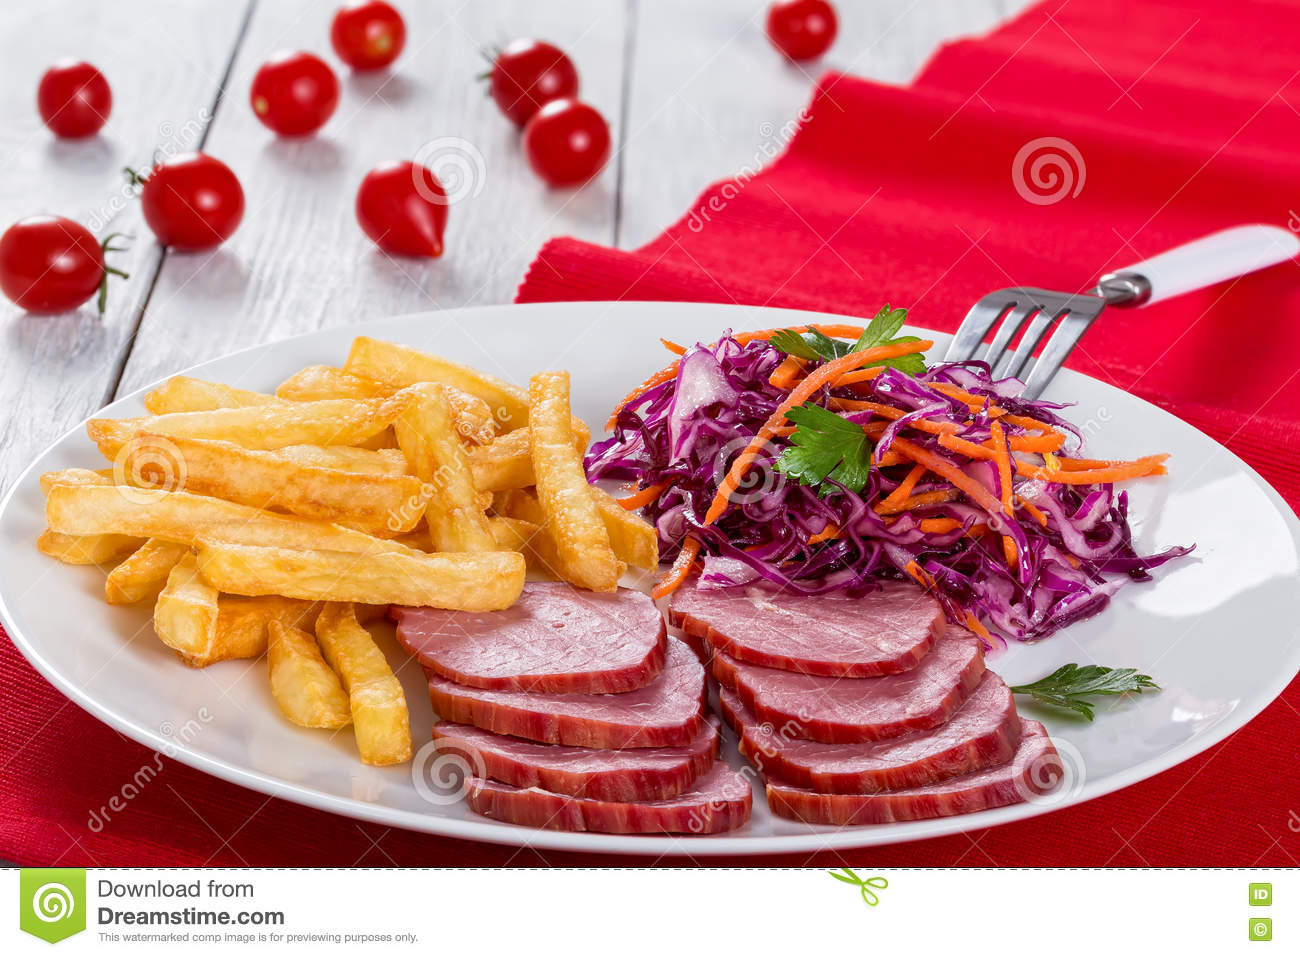 recipe: red cabbage in french [12]